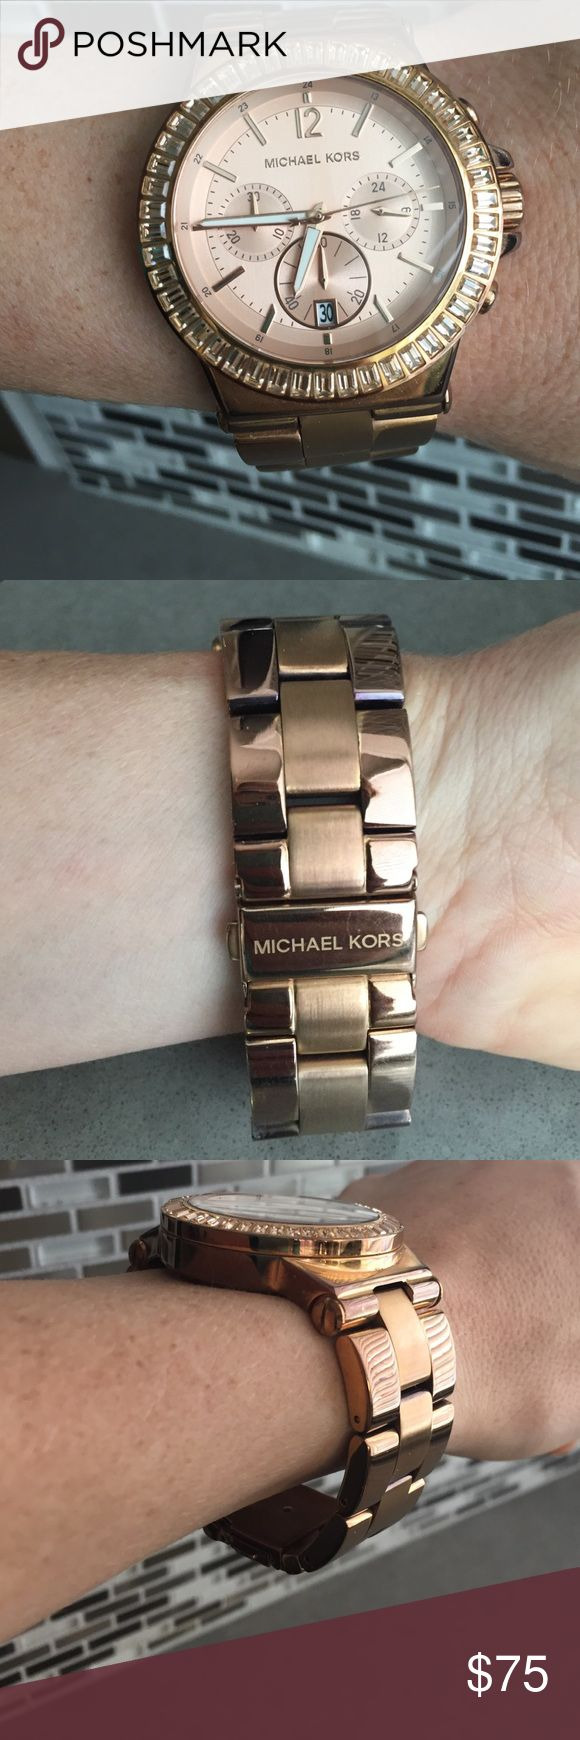 Rose Gold Michael Kors Watch. Rose Gold Michael Kors Watch with beautiful crystals around the face.  Shows signs of wear and needs battery.  Very pretty.  You can see it's big on me but Nordstroms or Michael Kors will add/remove links for free.  Also, rep at Michale Kors rep told me you can get it dipped by them so it looks brand new. Michael Kors Jewelry